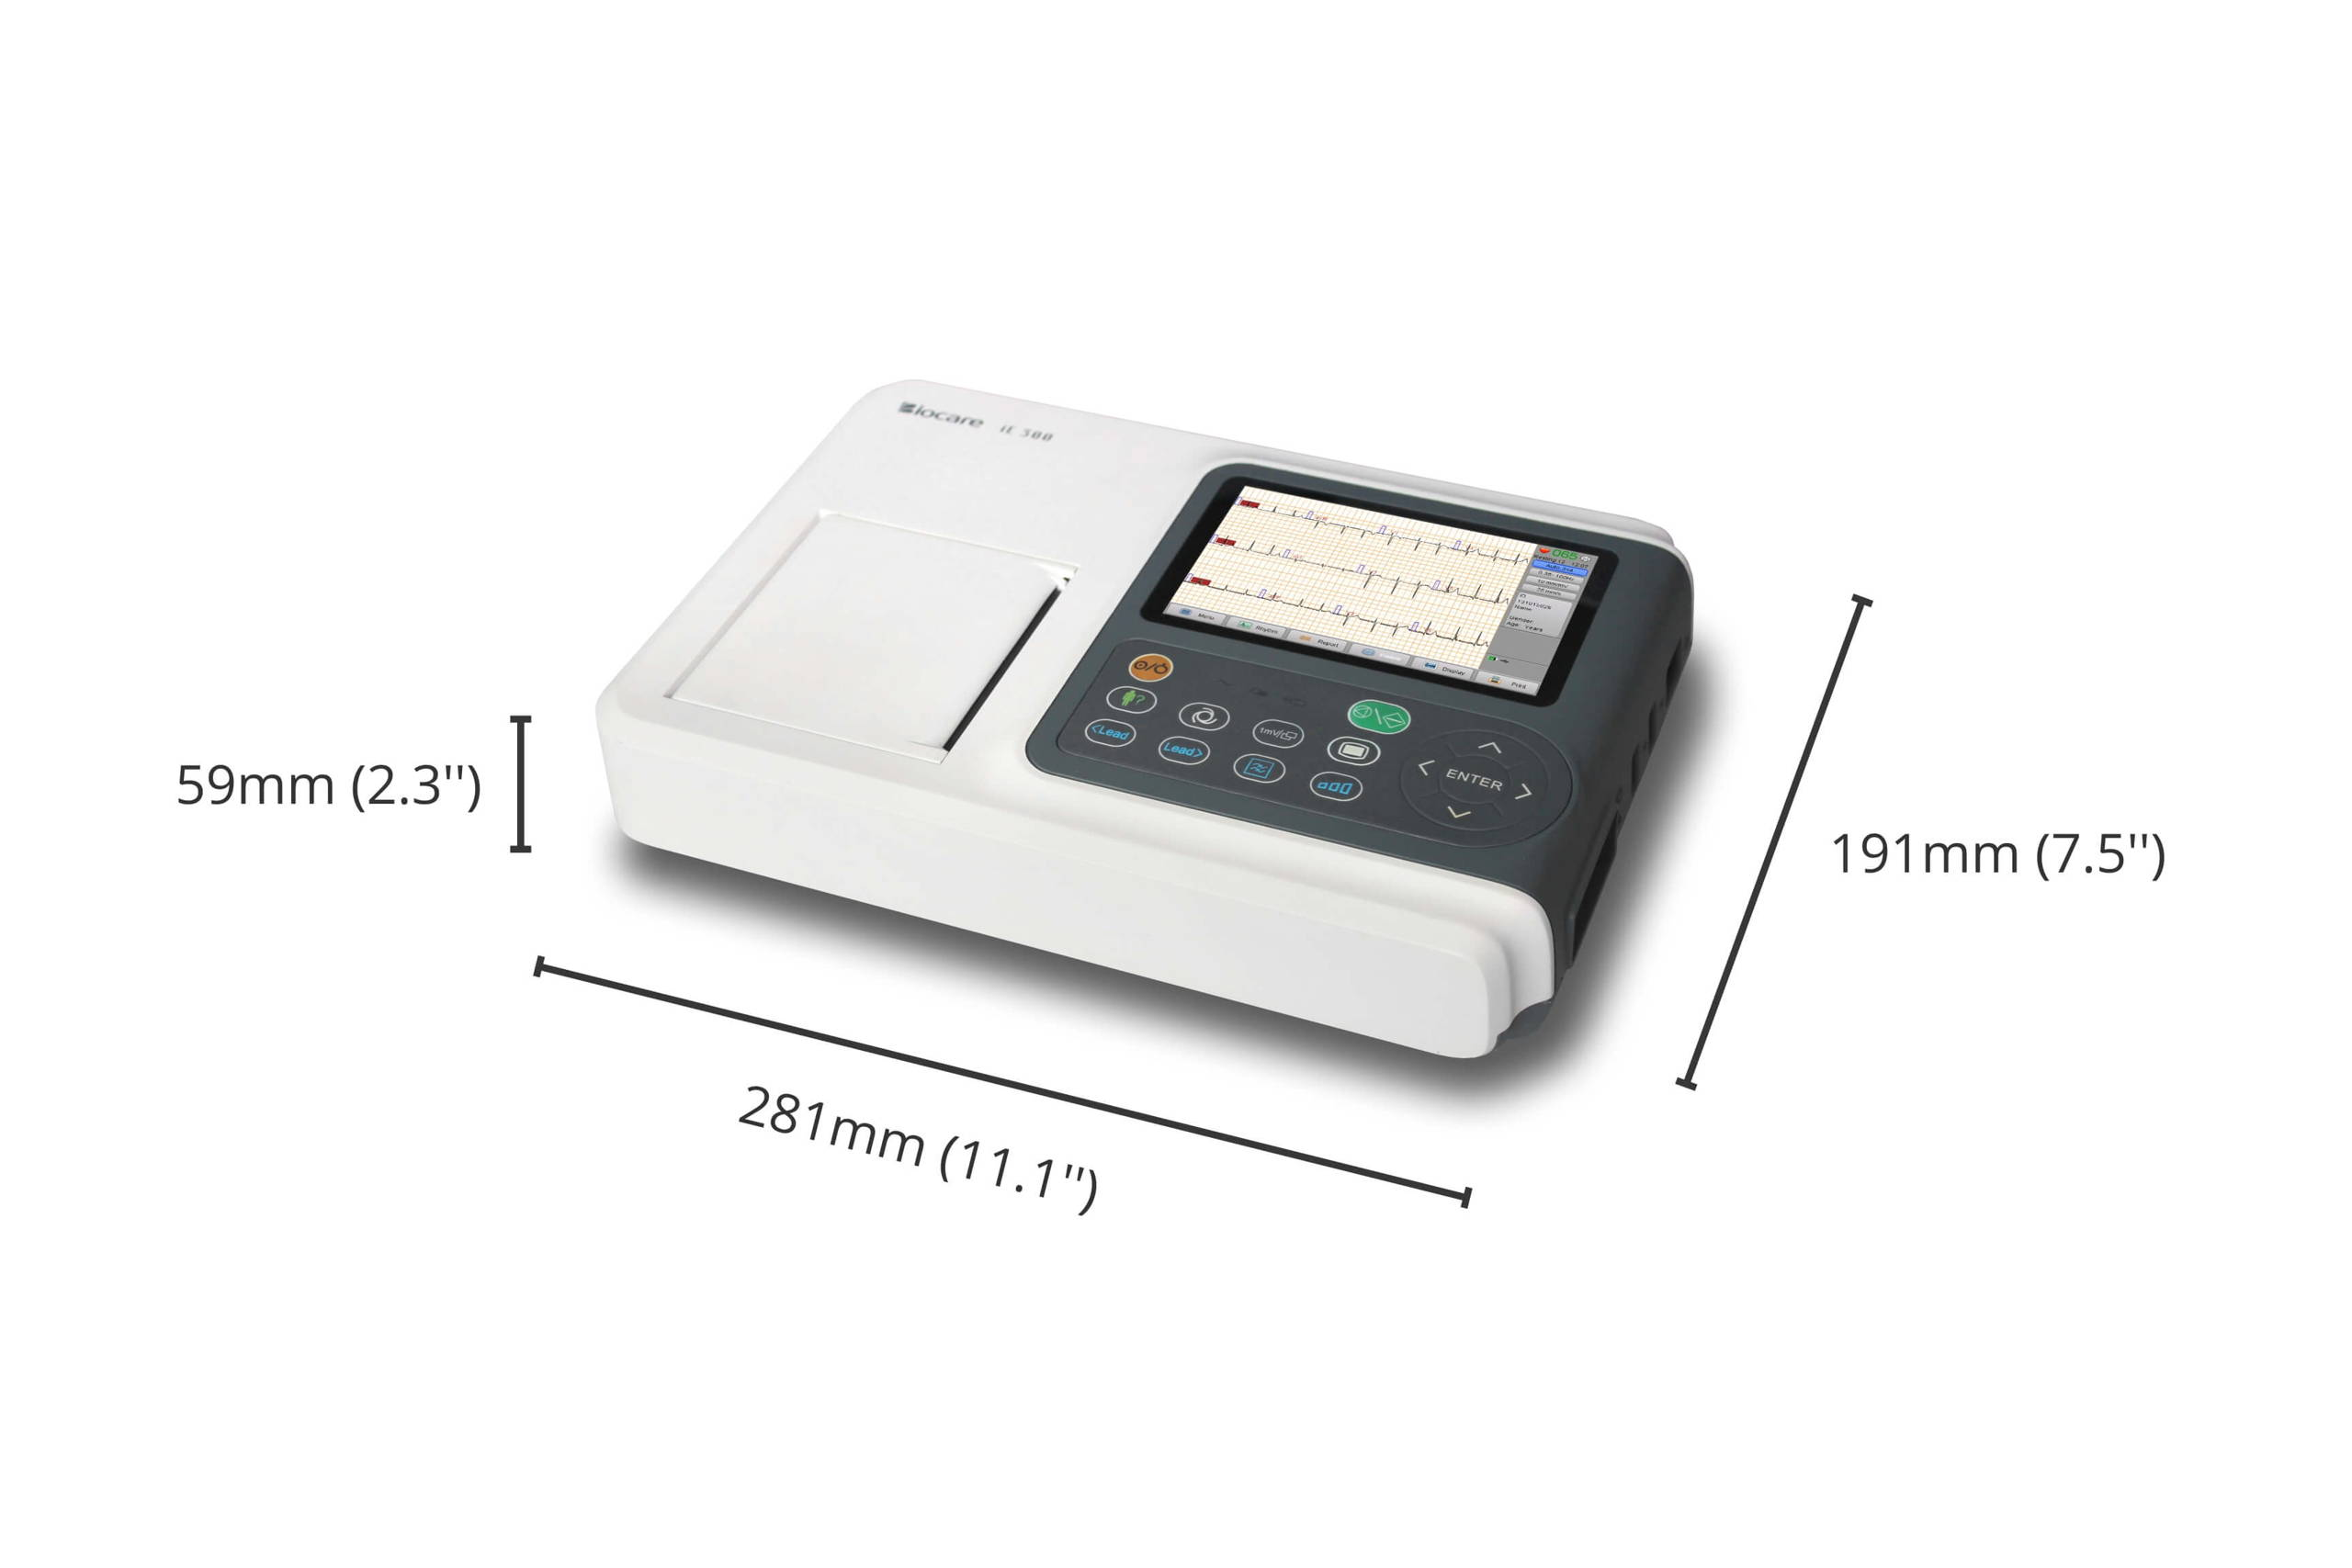 The size specification of Wellue Biocare ECG machine, length: 281mm, height: 59mm, width: 191mm.